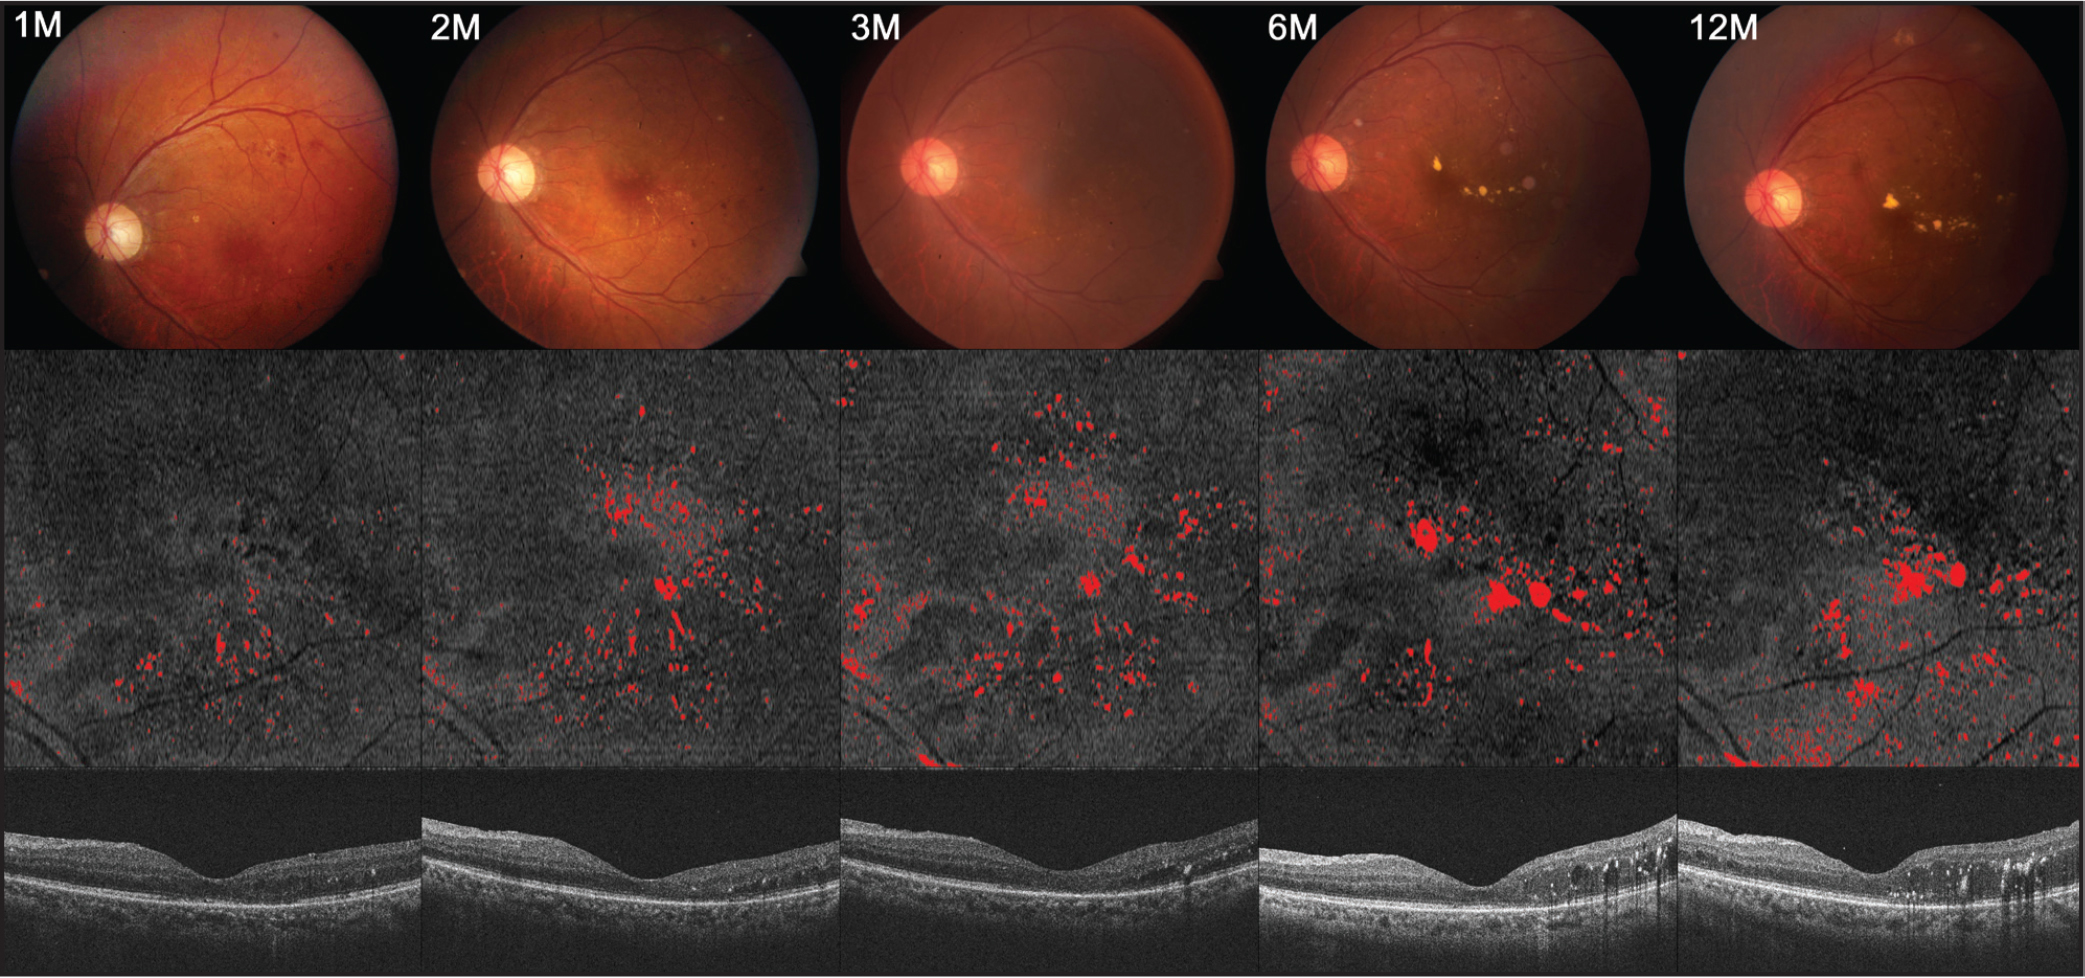 Serial changes in en face outer nuclear layer (ONL) slab hard exudates (HEs) after intravitreal ranibizumab treatment: a 60-year-old male patient with cystoid macular edema. Color fundus images (top), en face ONL slab images indicated with HEs area in red (middle), and cross-sectional images of central subfield corresponding to the en face image (bottom). The area fraction ONL HEs in en face ONL slab images are 1.36% at month 1, 2.95% at month 2, 3.49% at month 3, 3.61% at month 6, and 3.82% at month 12.